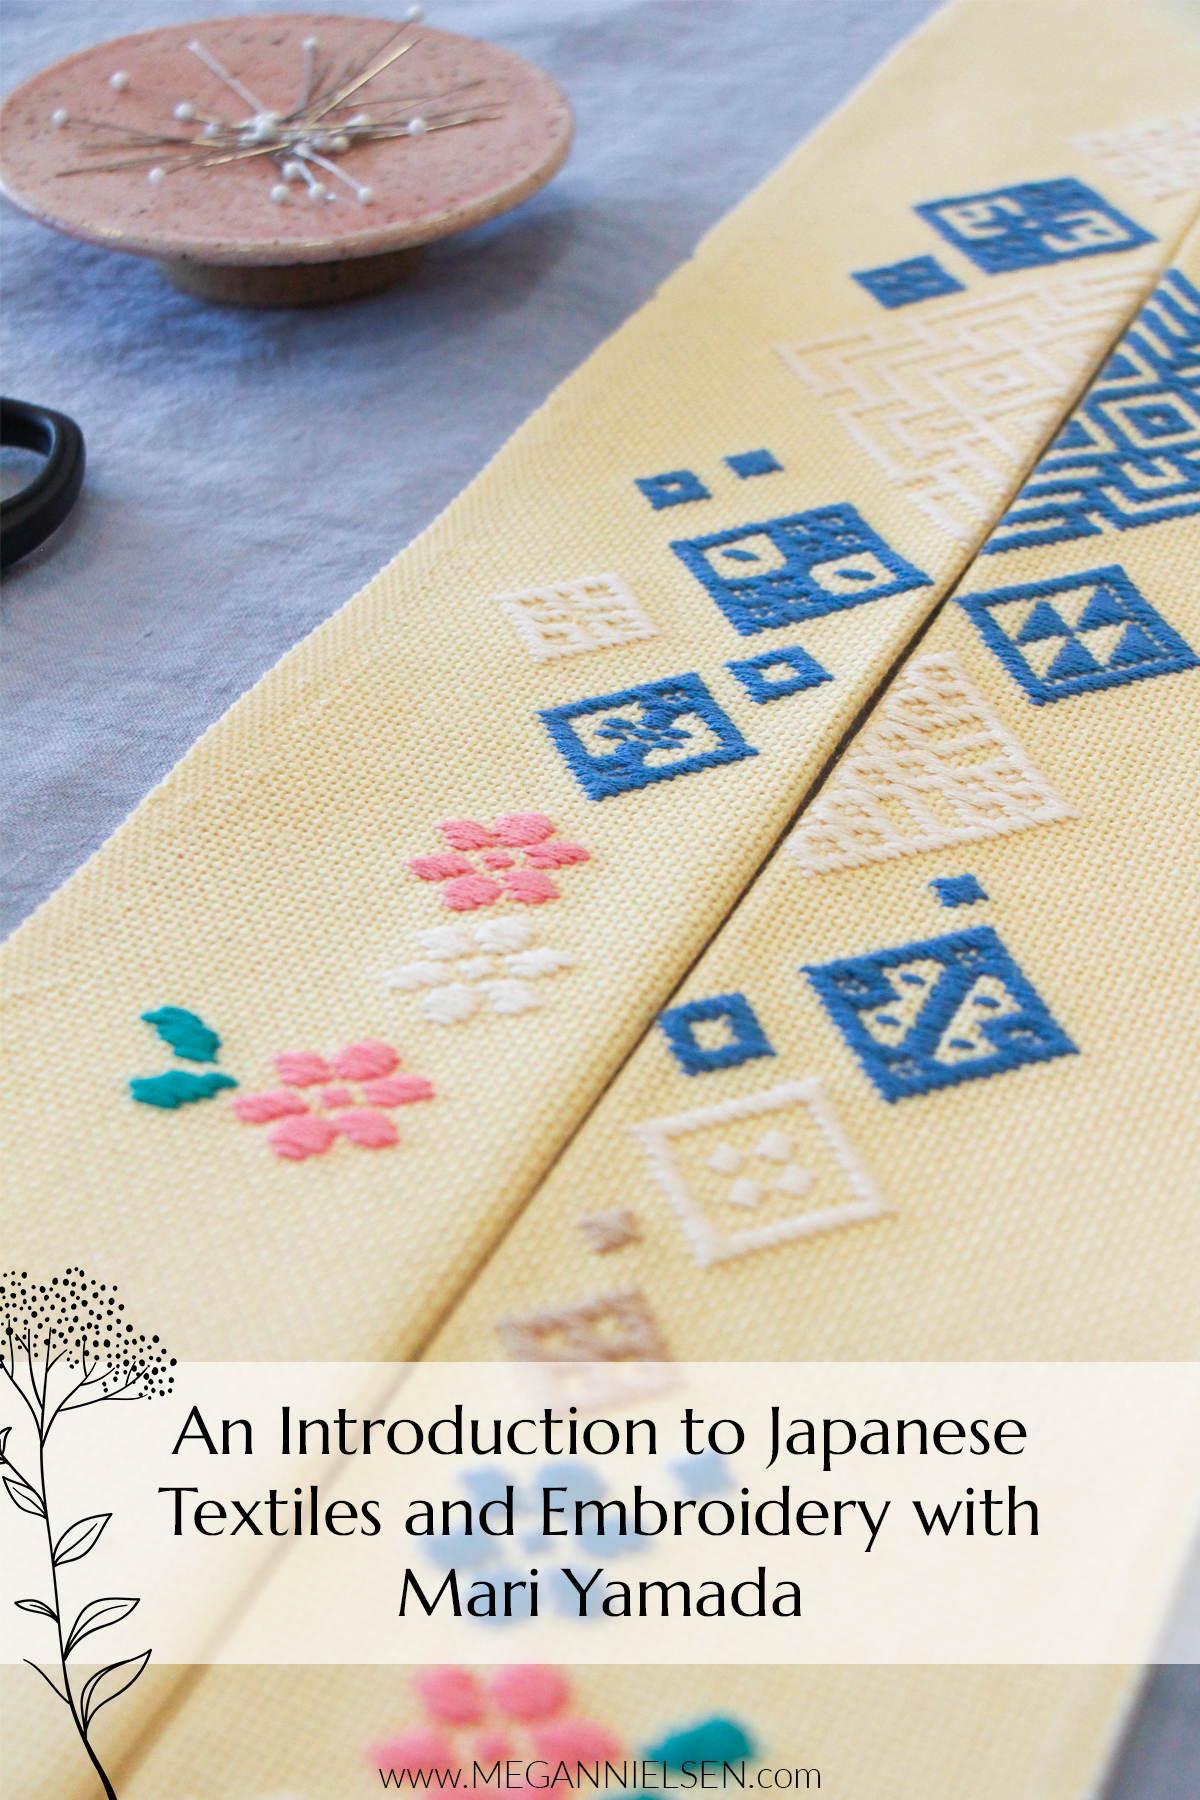 Introduction to Japanese Textiles and Embroidery with Mari Yamada